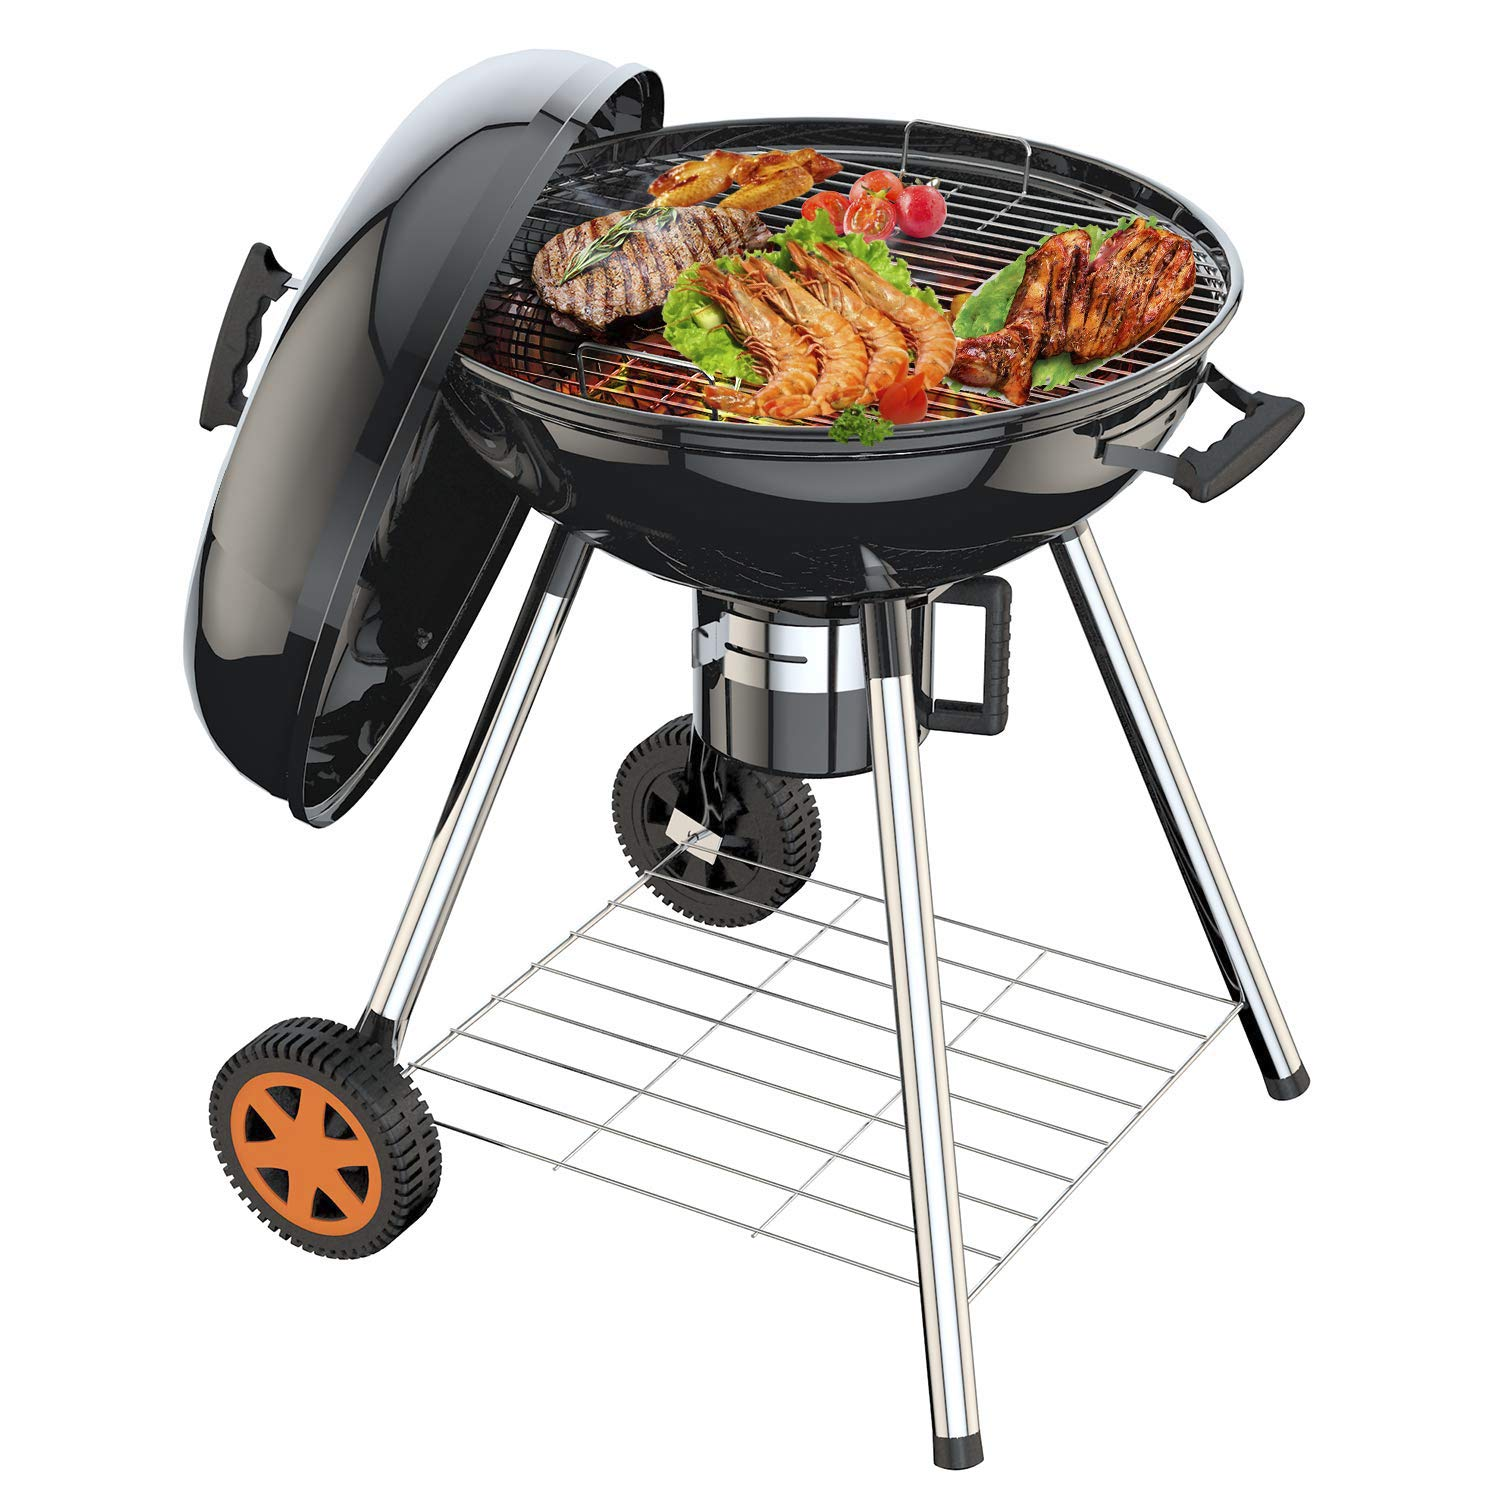 TACKLIFE Portable Charcoal Grill 22.5 inch Grill, Kettle Portable Camping Charcoal Grill with Sturdy Barbecue Cover,Enjoy Your Outdoor Life